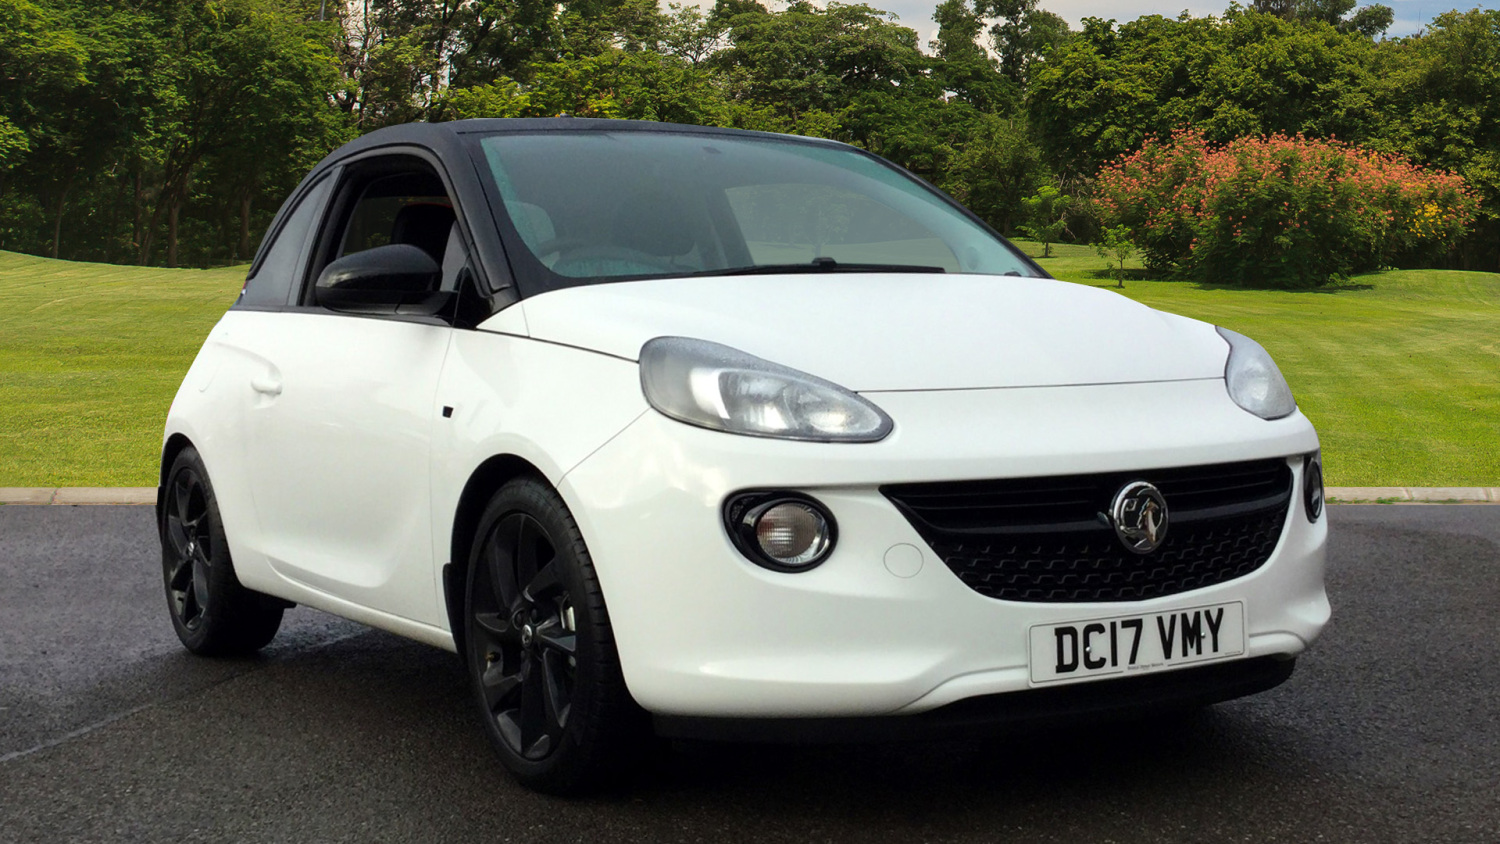 Vauxhall Adam 1 2i Energised 3dr Petrol Hatchback furthermore Yamaha Yzf R15 Photos as well Tarpmaster 400 Series Dump Trucks additionally 2017 Ford F 150 F 150 Svt Raptor Ford F 150 Svt Raptor Custom Build Show Truck One Of A Kind 707 Performance also Article read 278. on dc motors dealer